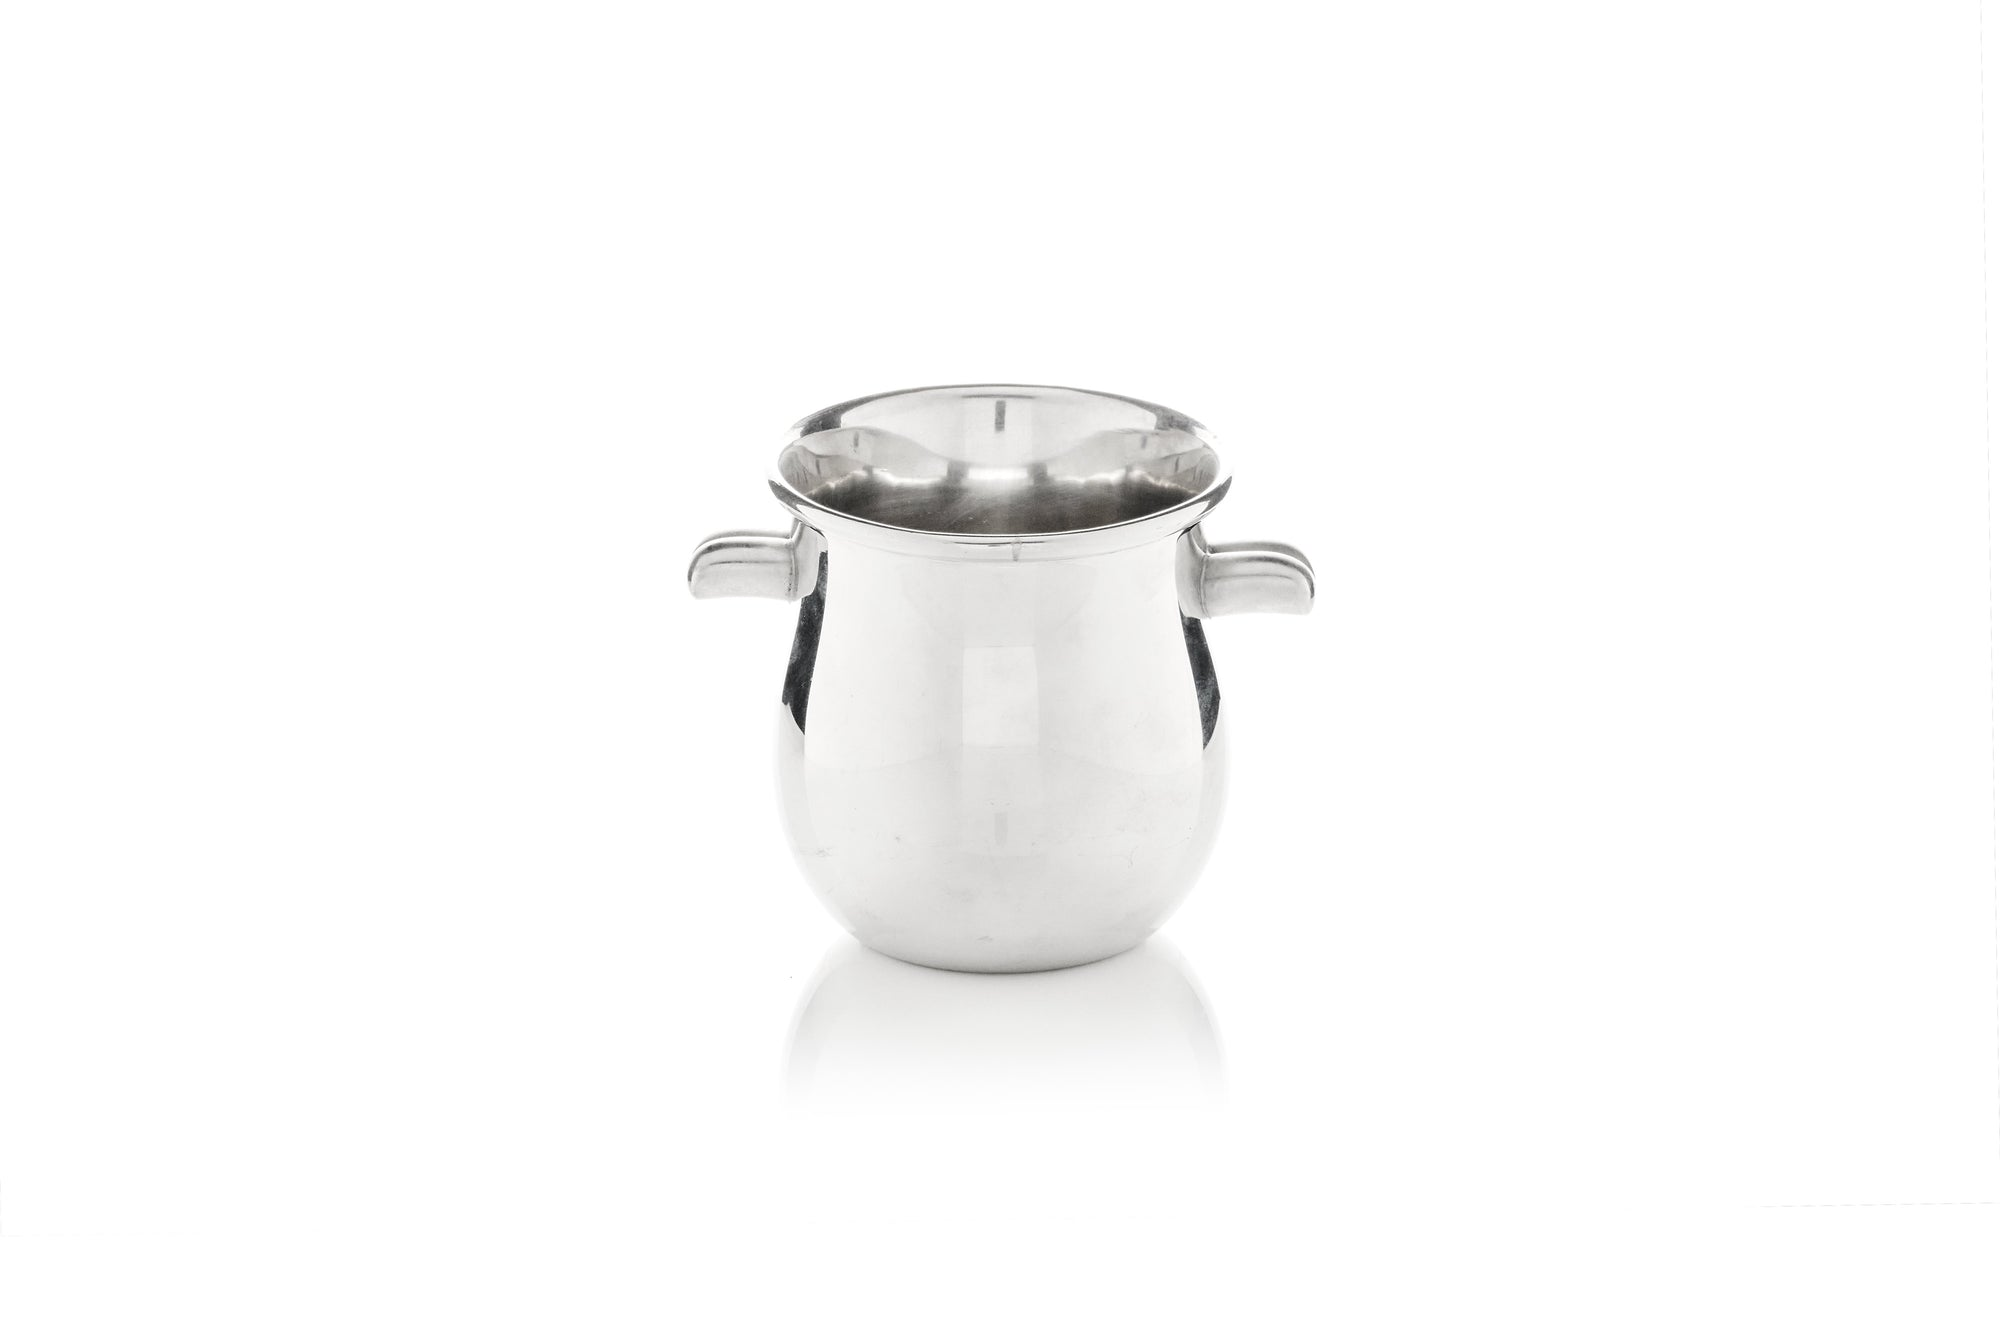 Hermes Modernist Ice Bucket